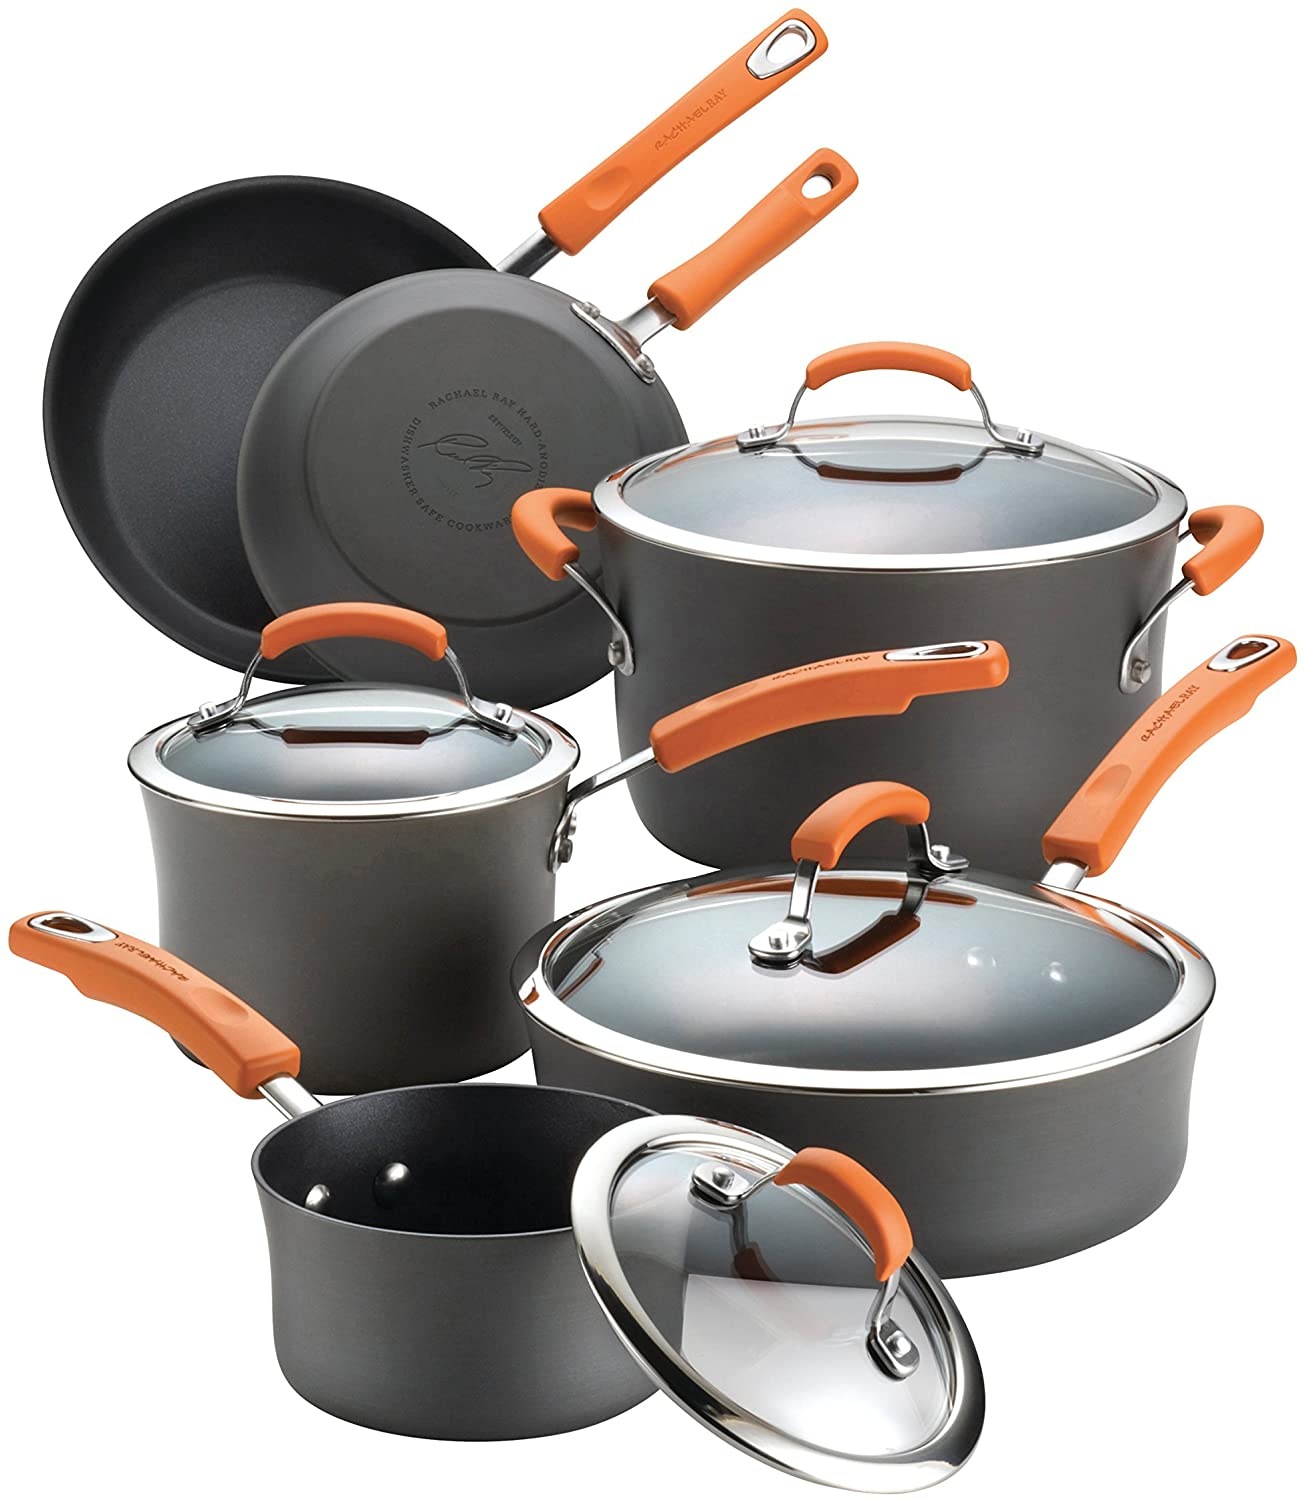 Cheap Rachael Ray cookware sets